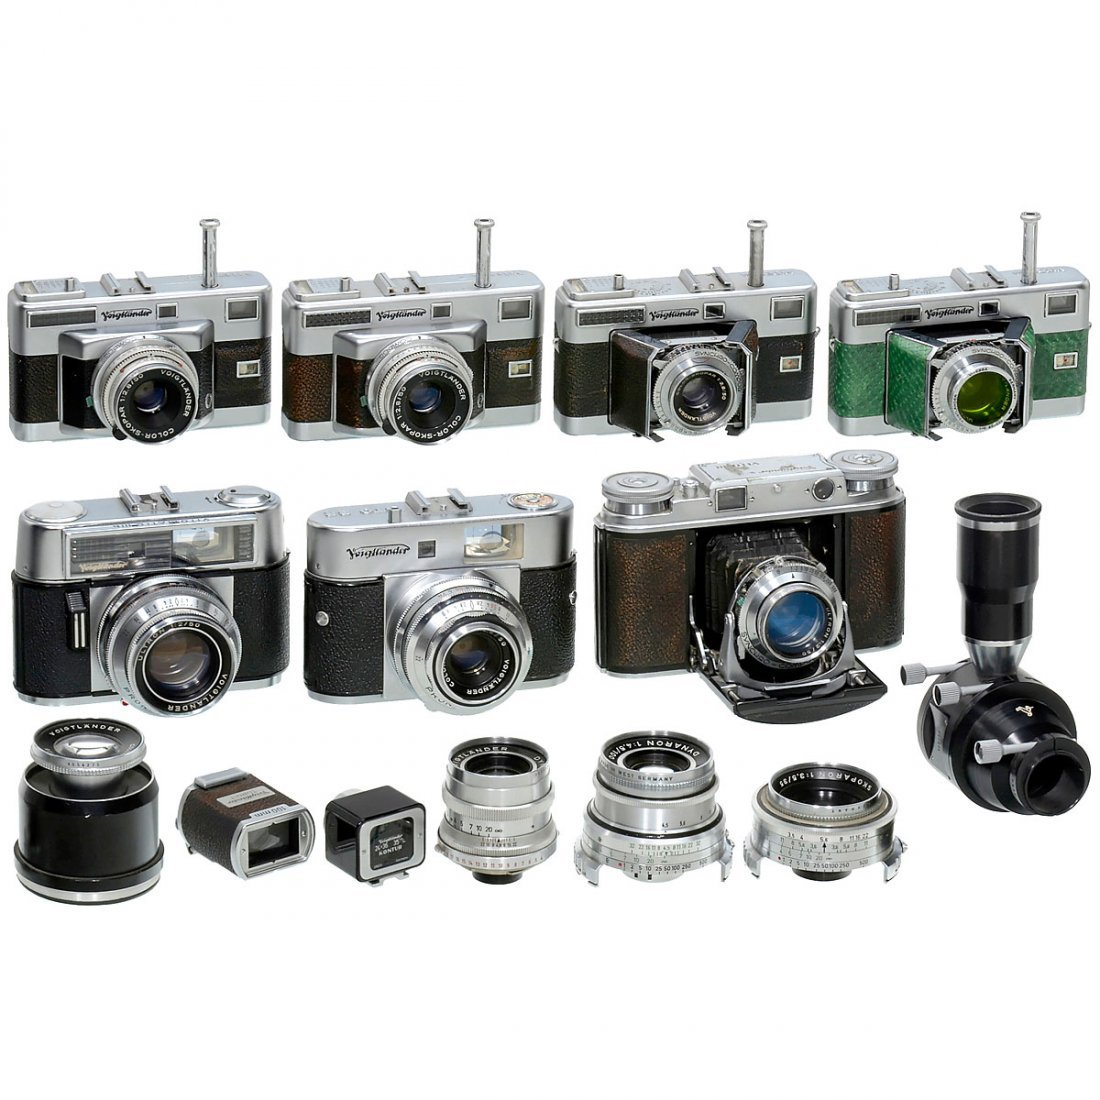 Voigtländer 35 mm Cameras and Lenses